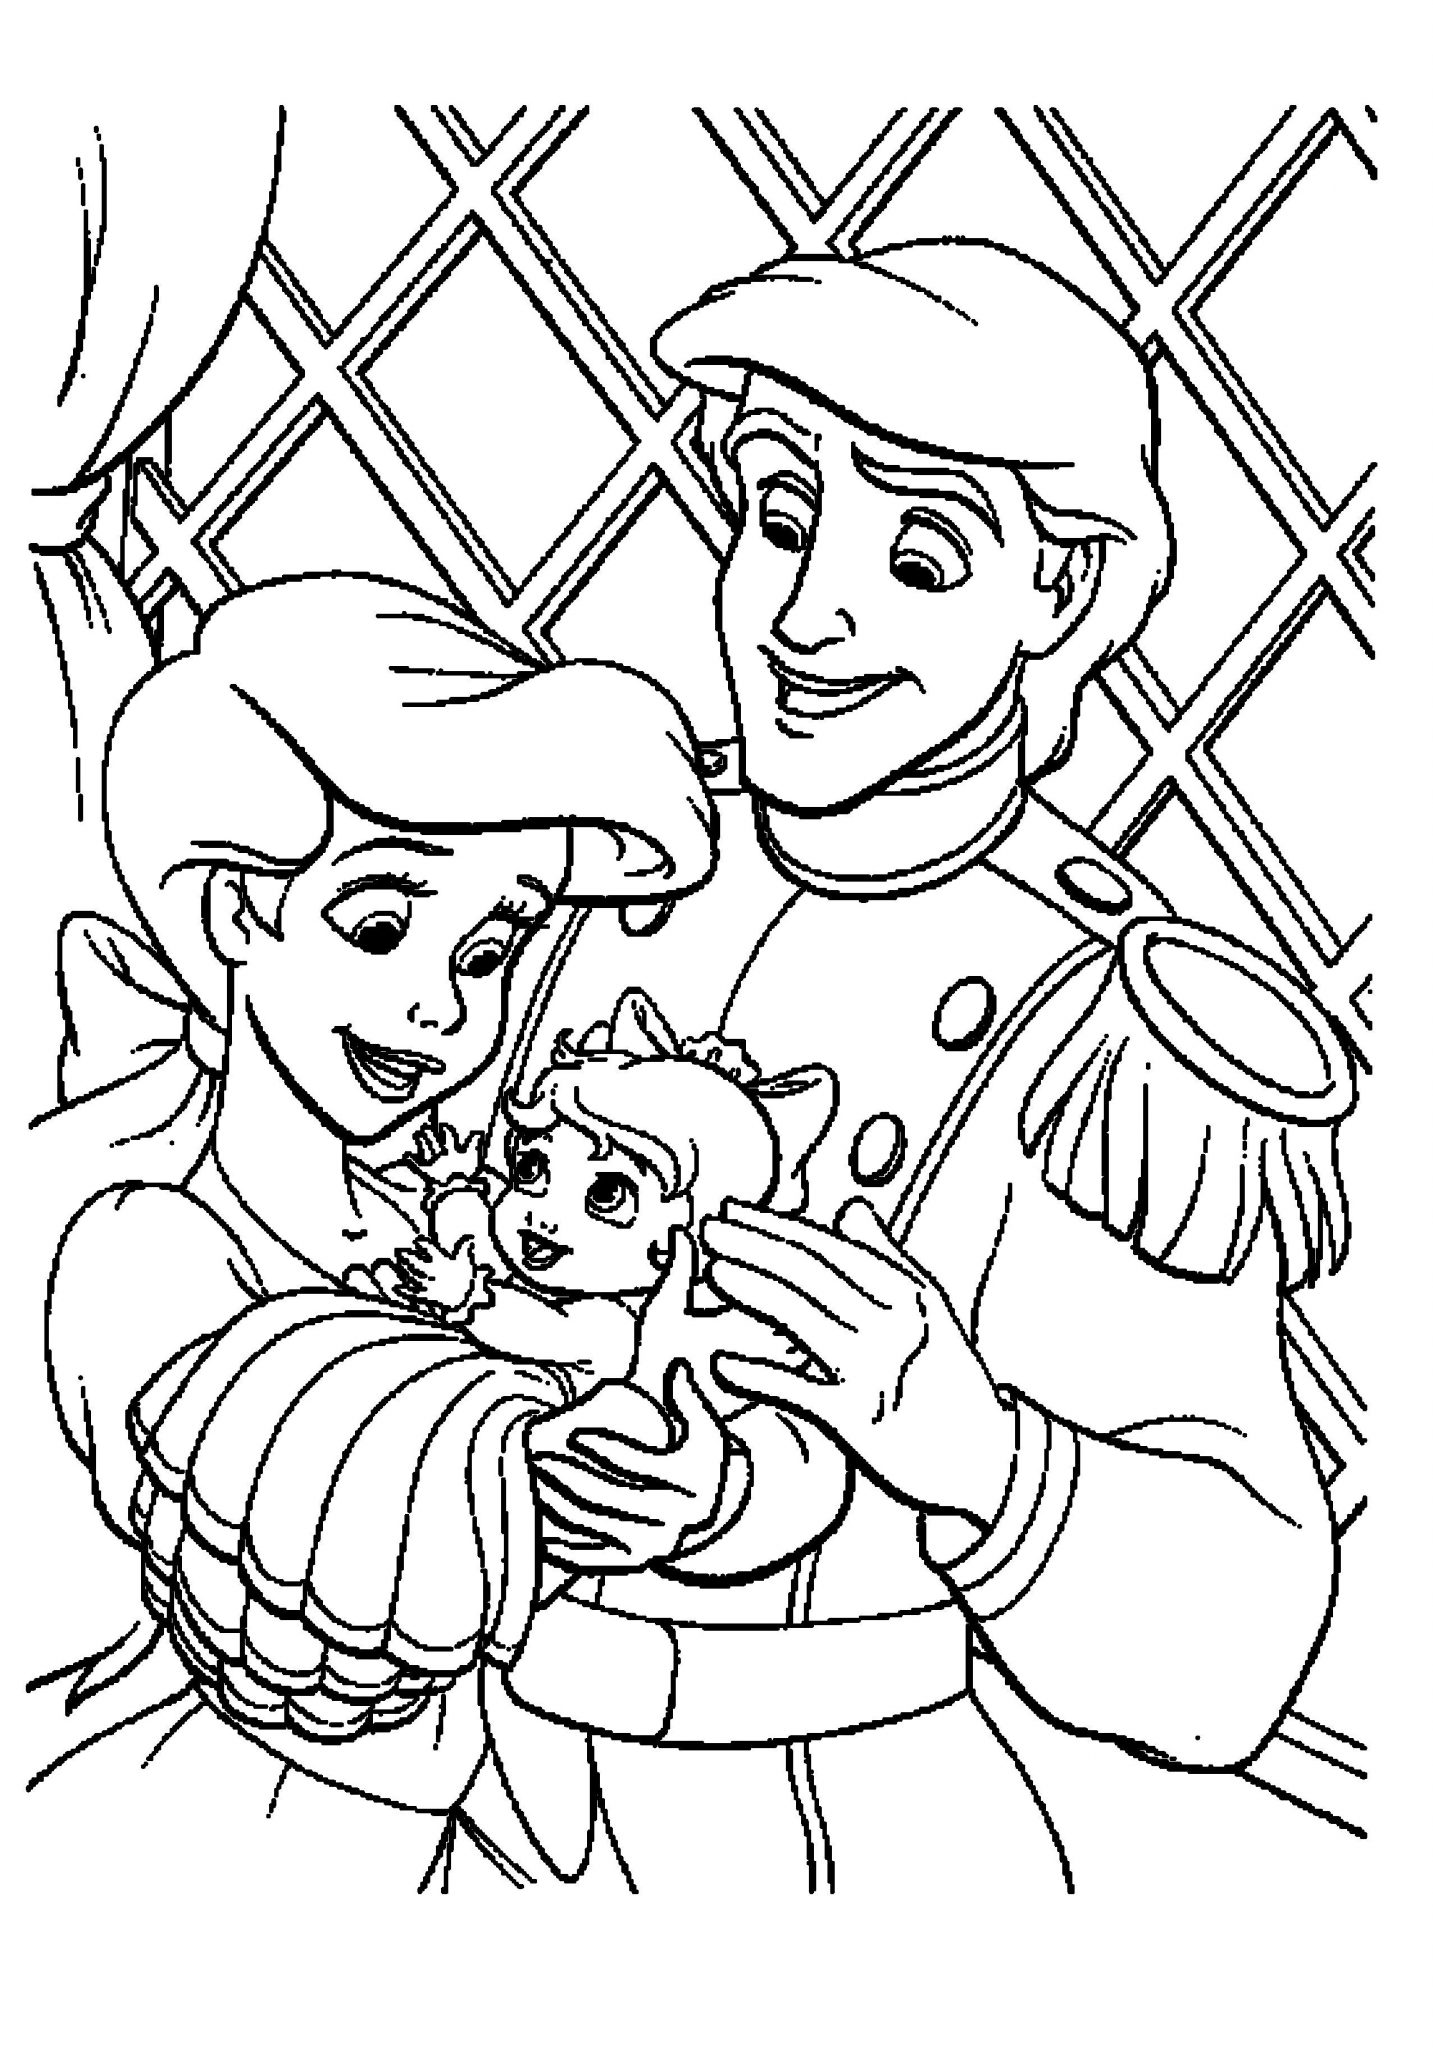 ariel little mermaid coloring pages ariel the little mermaid coloring pages for girls to print ariel pages coloring mermaid little